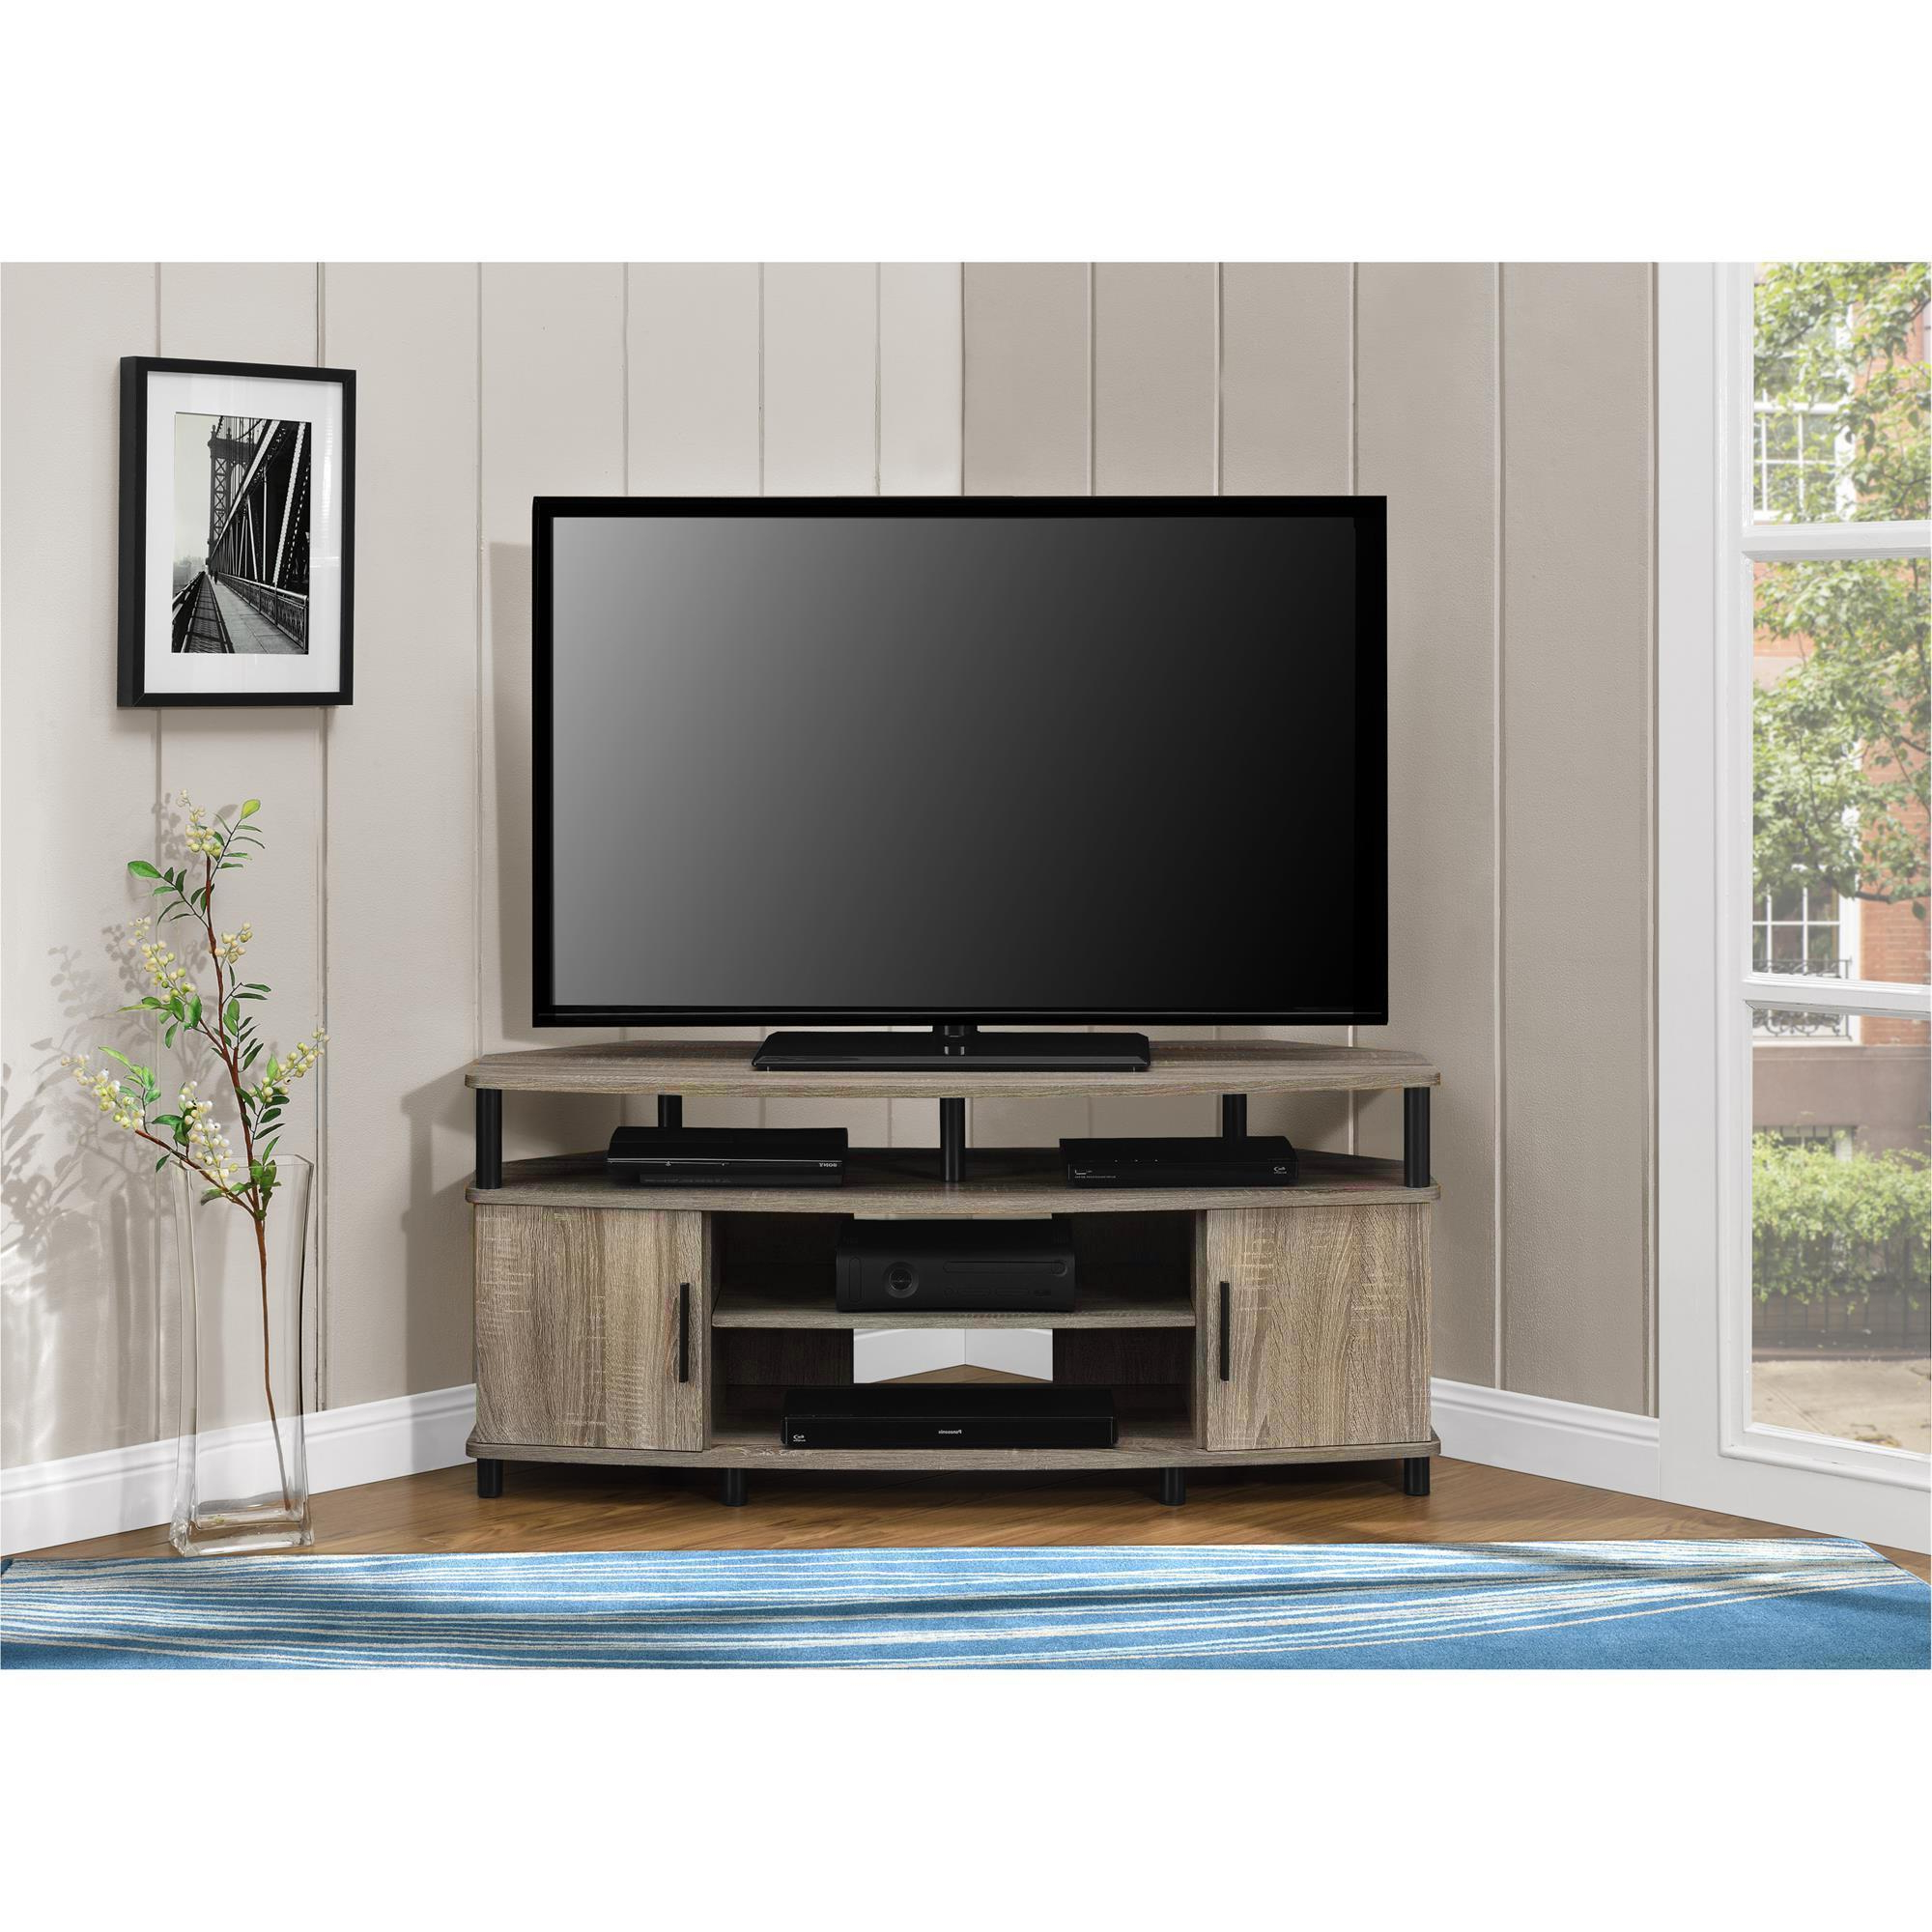 Shop Ameriwood Home Carson 50 Inch Sonoma Oak Corner Tv Stand – Free With Regard To Century Blue 60 Inch Tv Stands (Gallery 13 of 20)